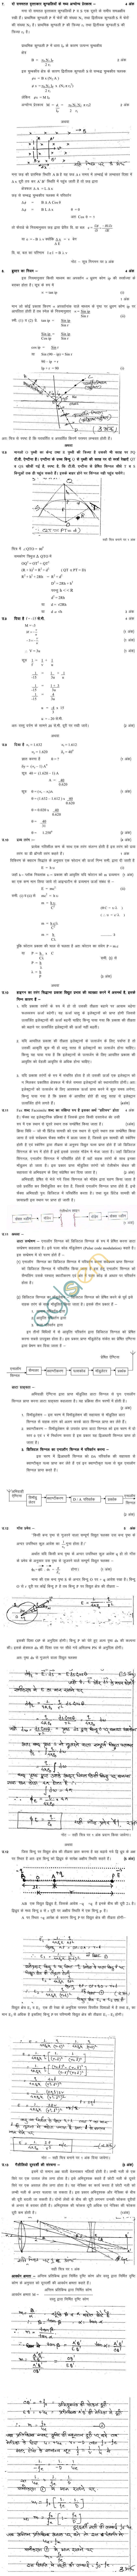 MP Board Class XII Physics Model Questions & Answers - Set 4